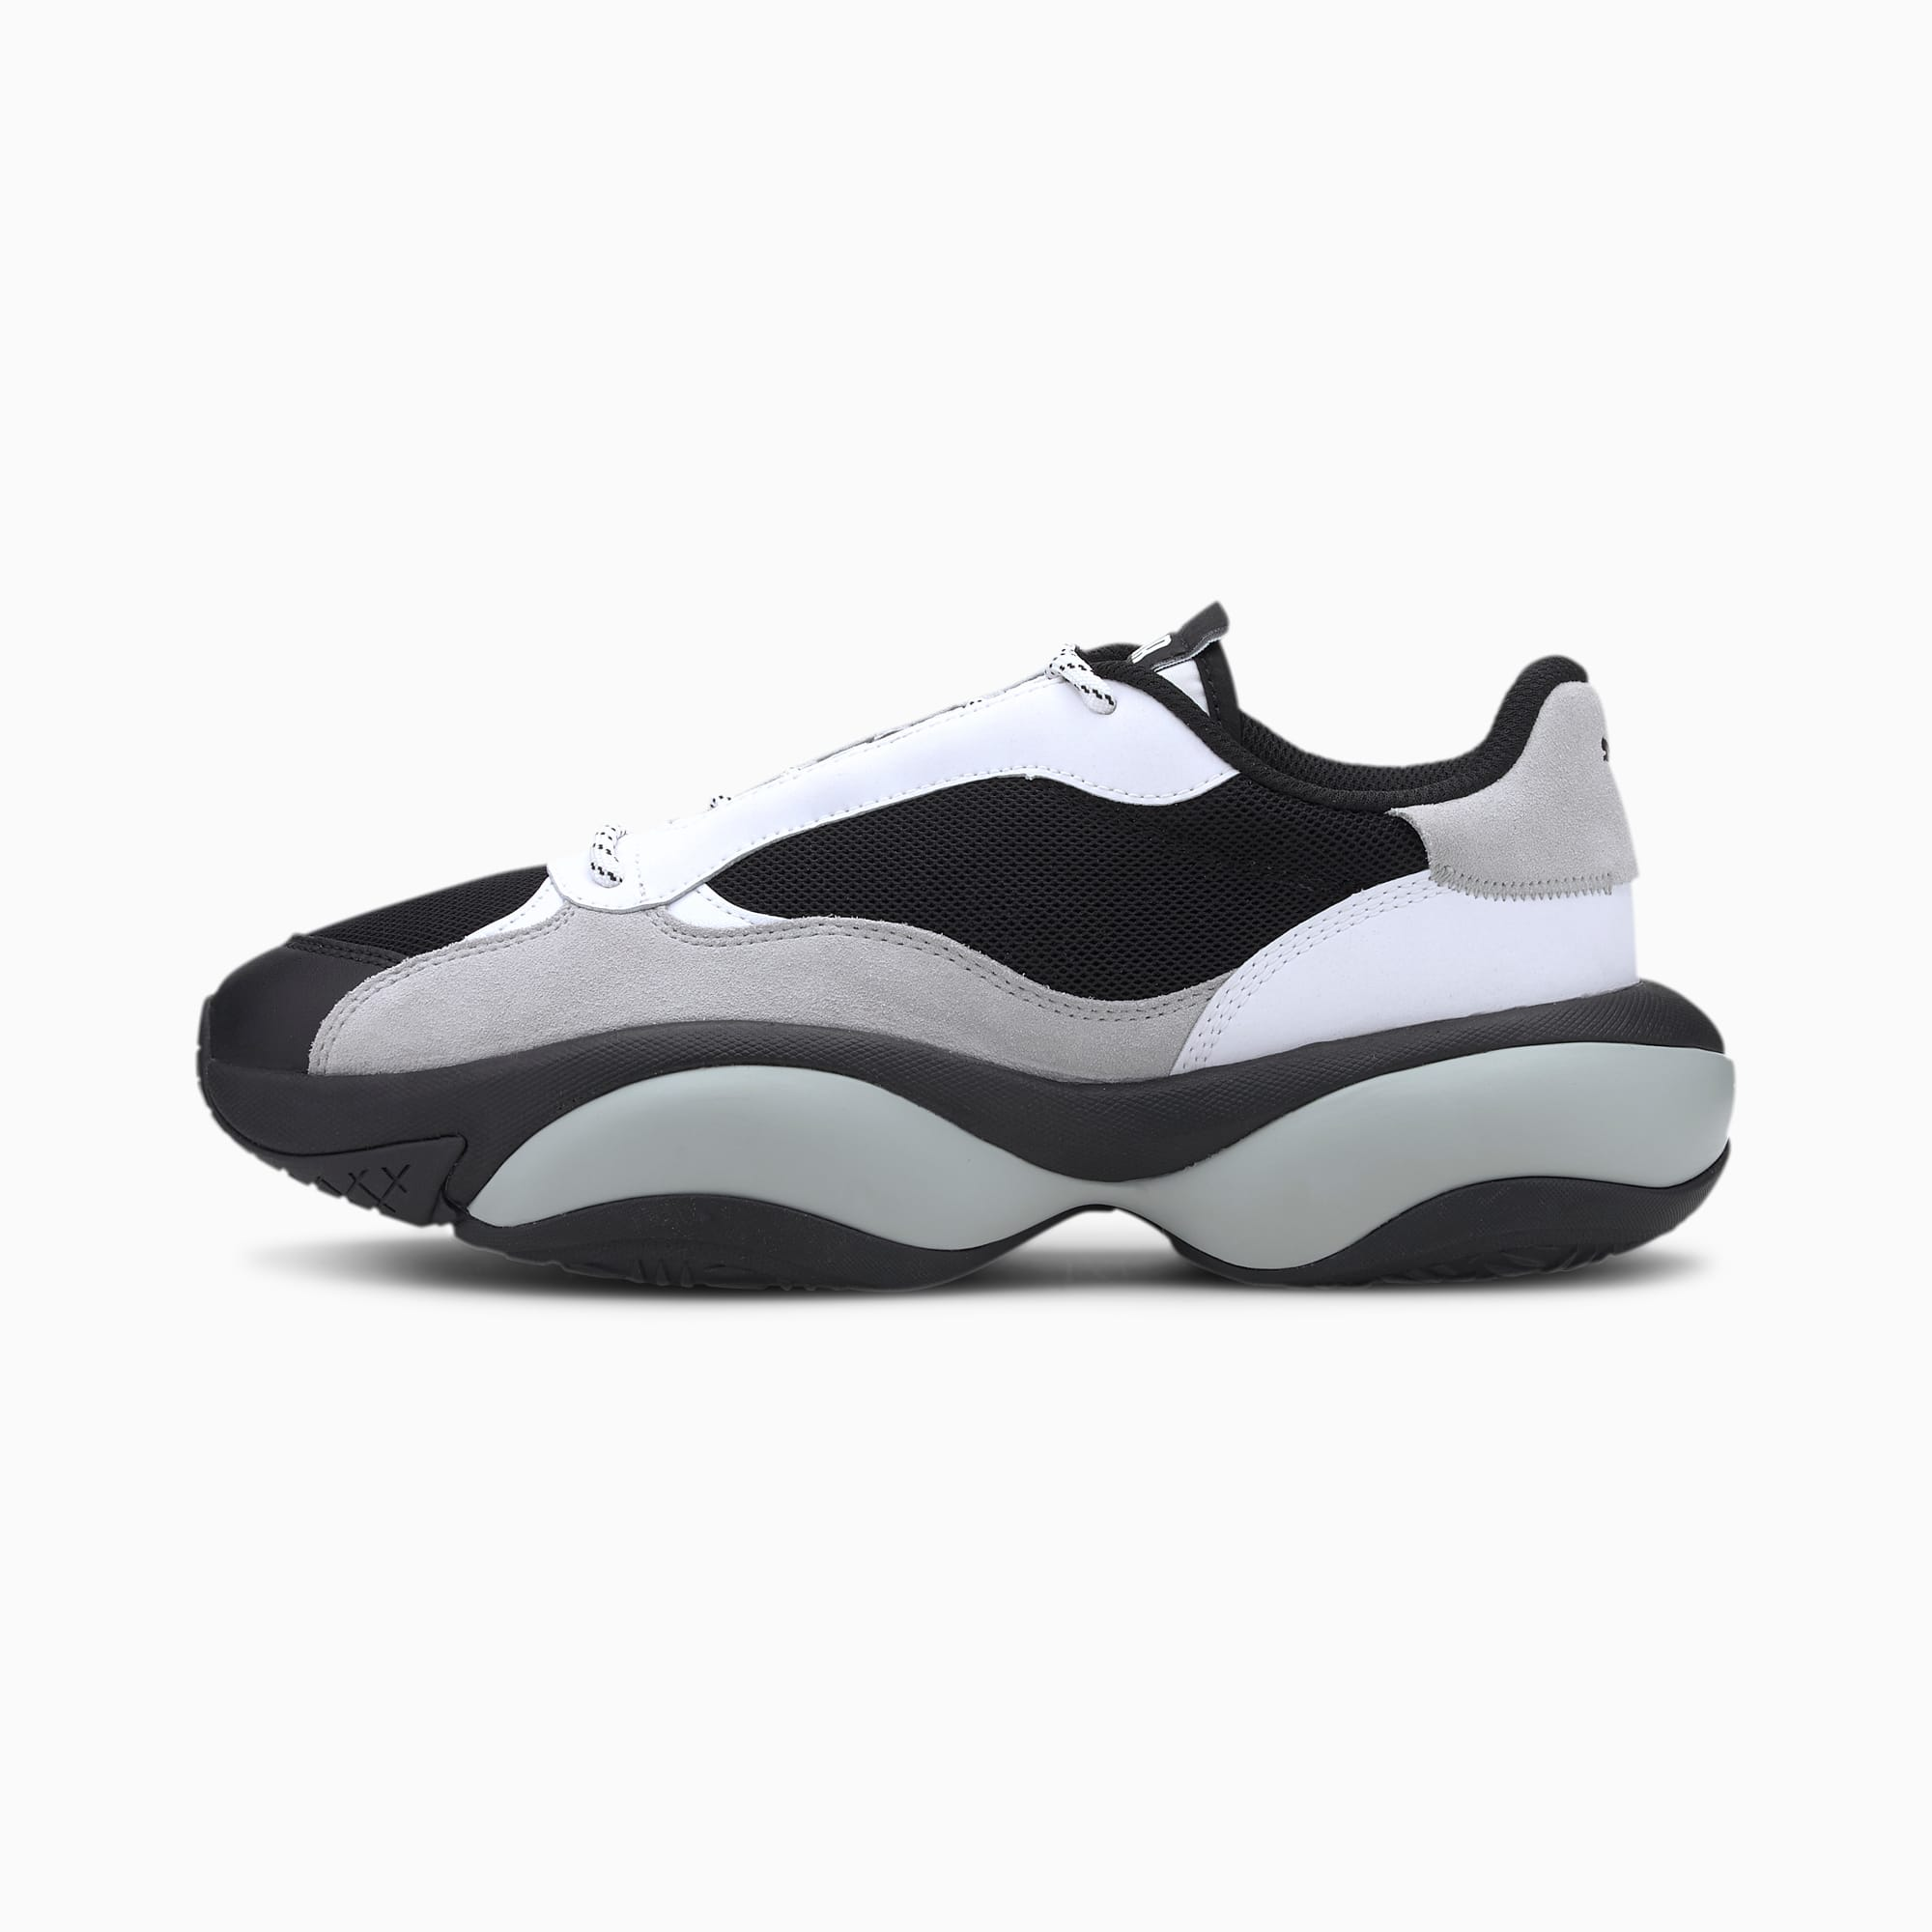 Scarpe da ginnastica Alteration Core | Puma Black Puma White